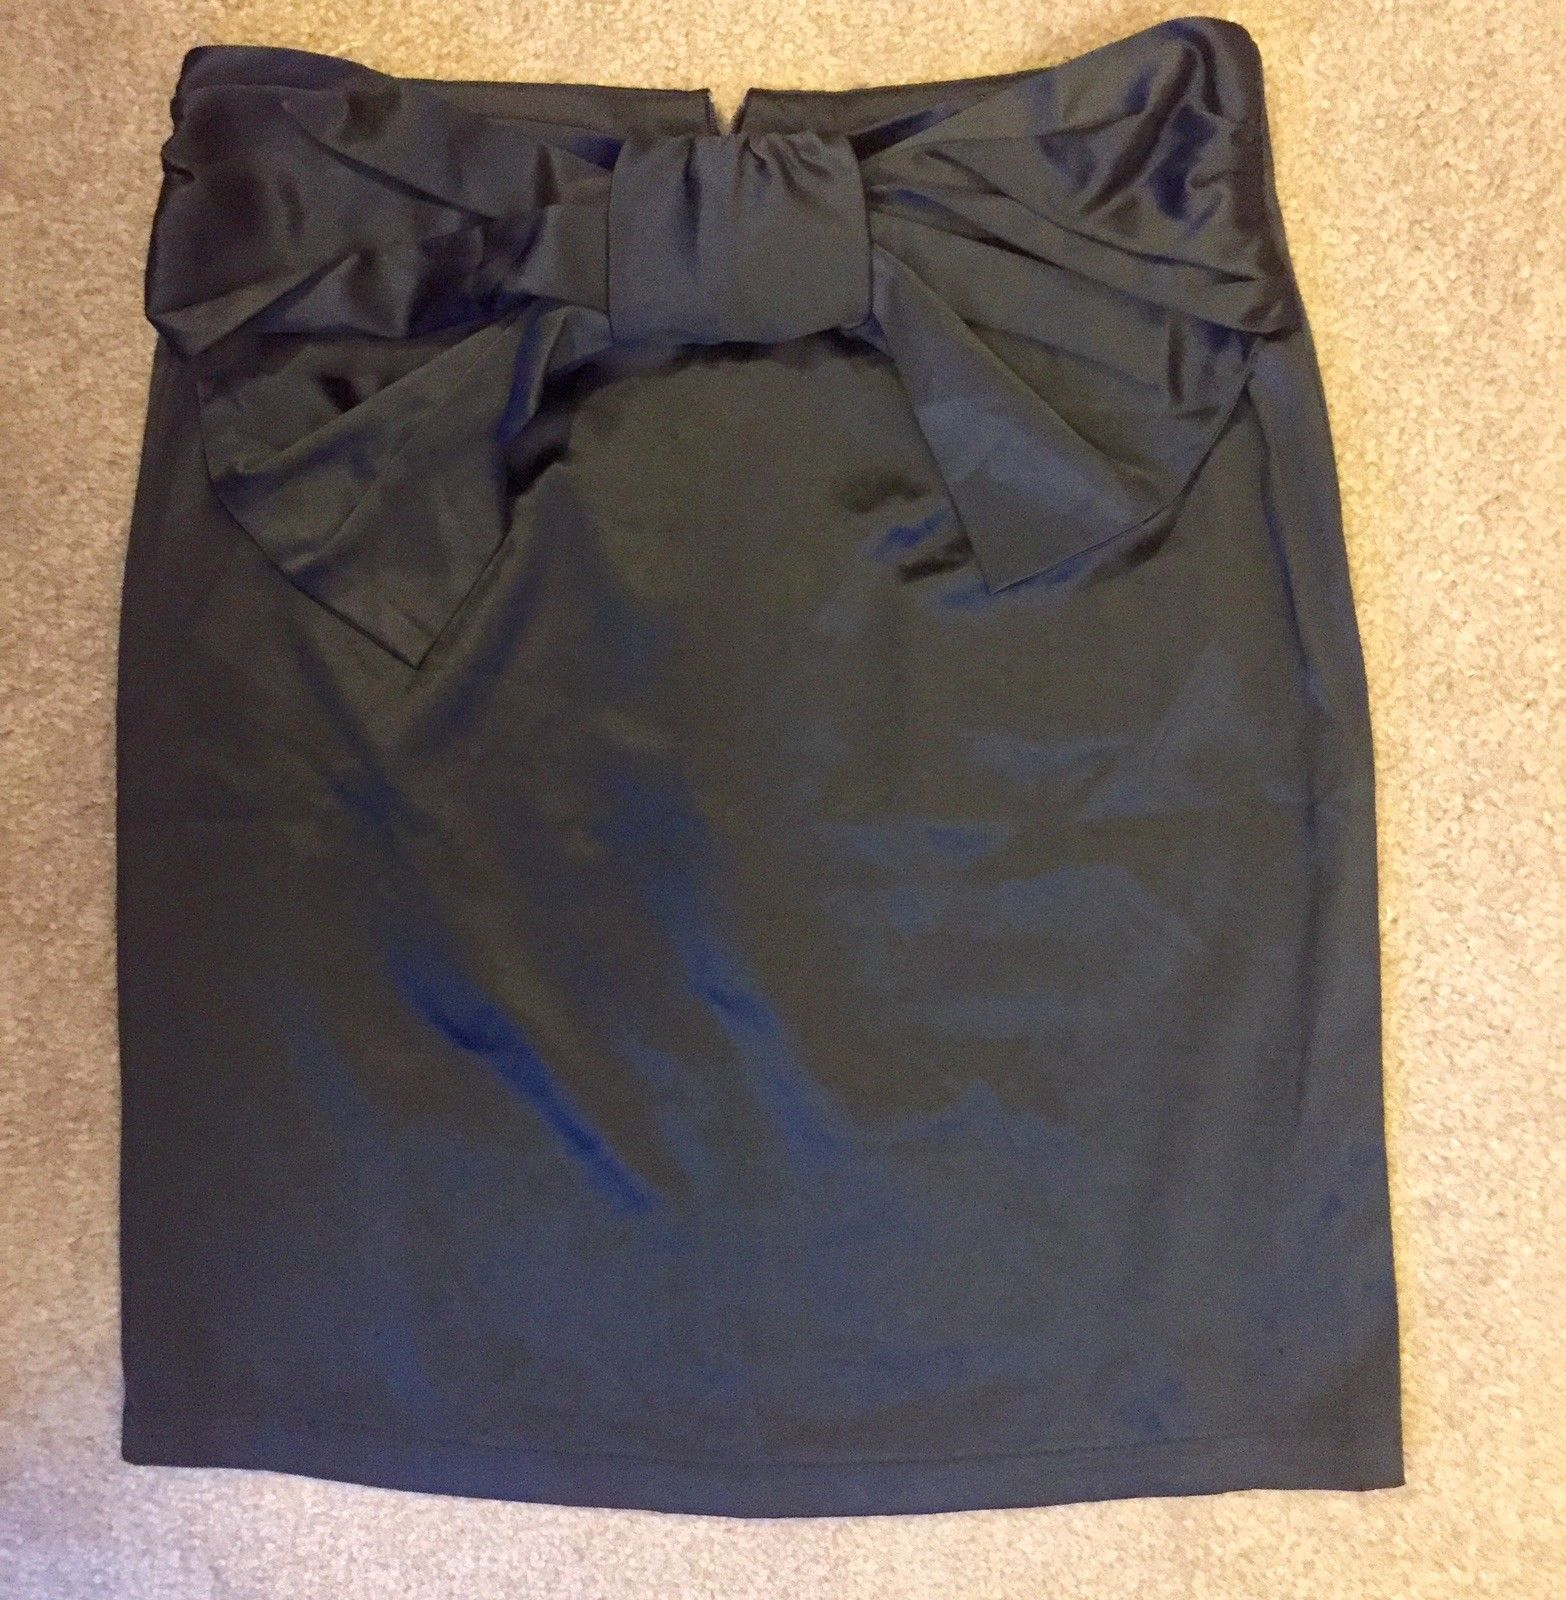 Chanel Mini Skirt with Black Bow (PLEASE NOTE: My photography skills have gotten MUCH better since I first began... also, I researched and researched this piece to make sure it wasn't a fake.) Bought: $4.99 (Goodwill) Listed: $49.99 Sold: $40 Profit: $35.01 (minus eBay's cut)